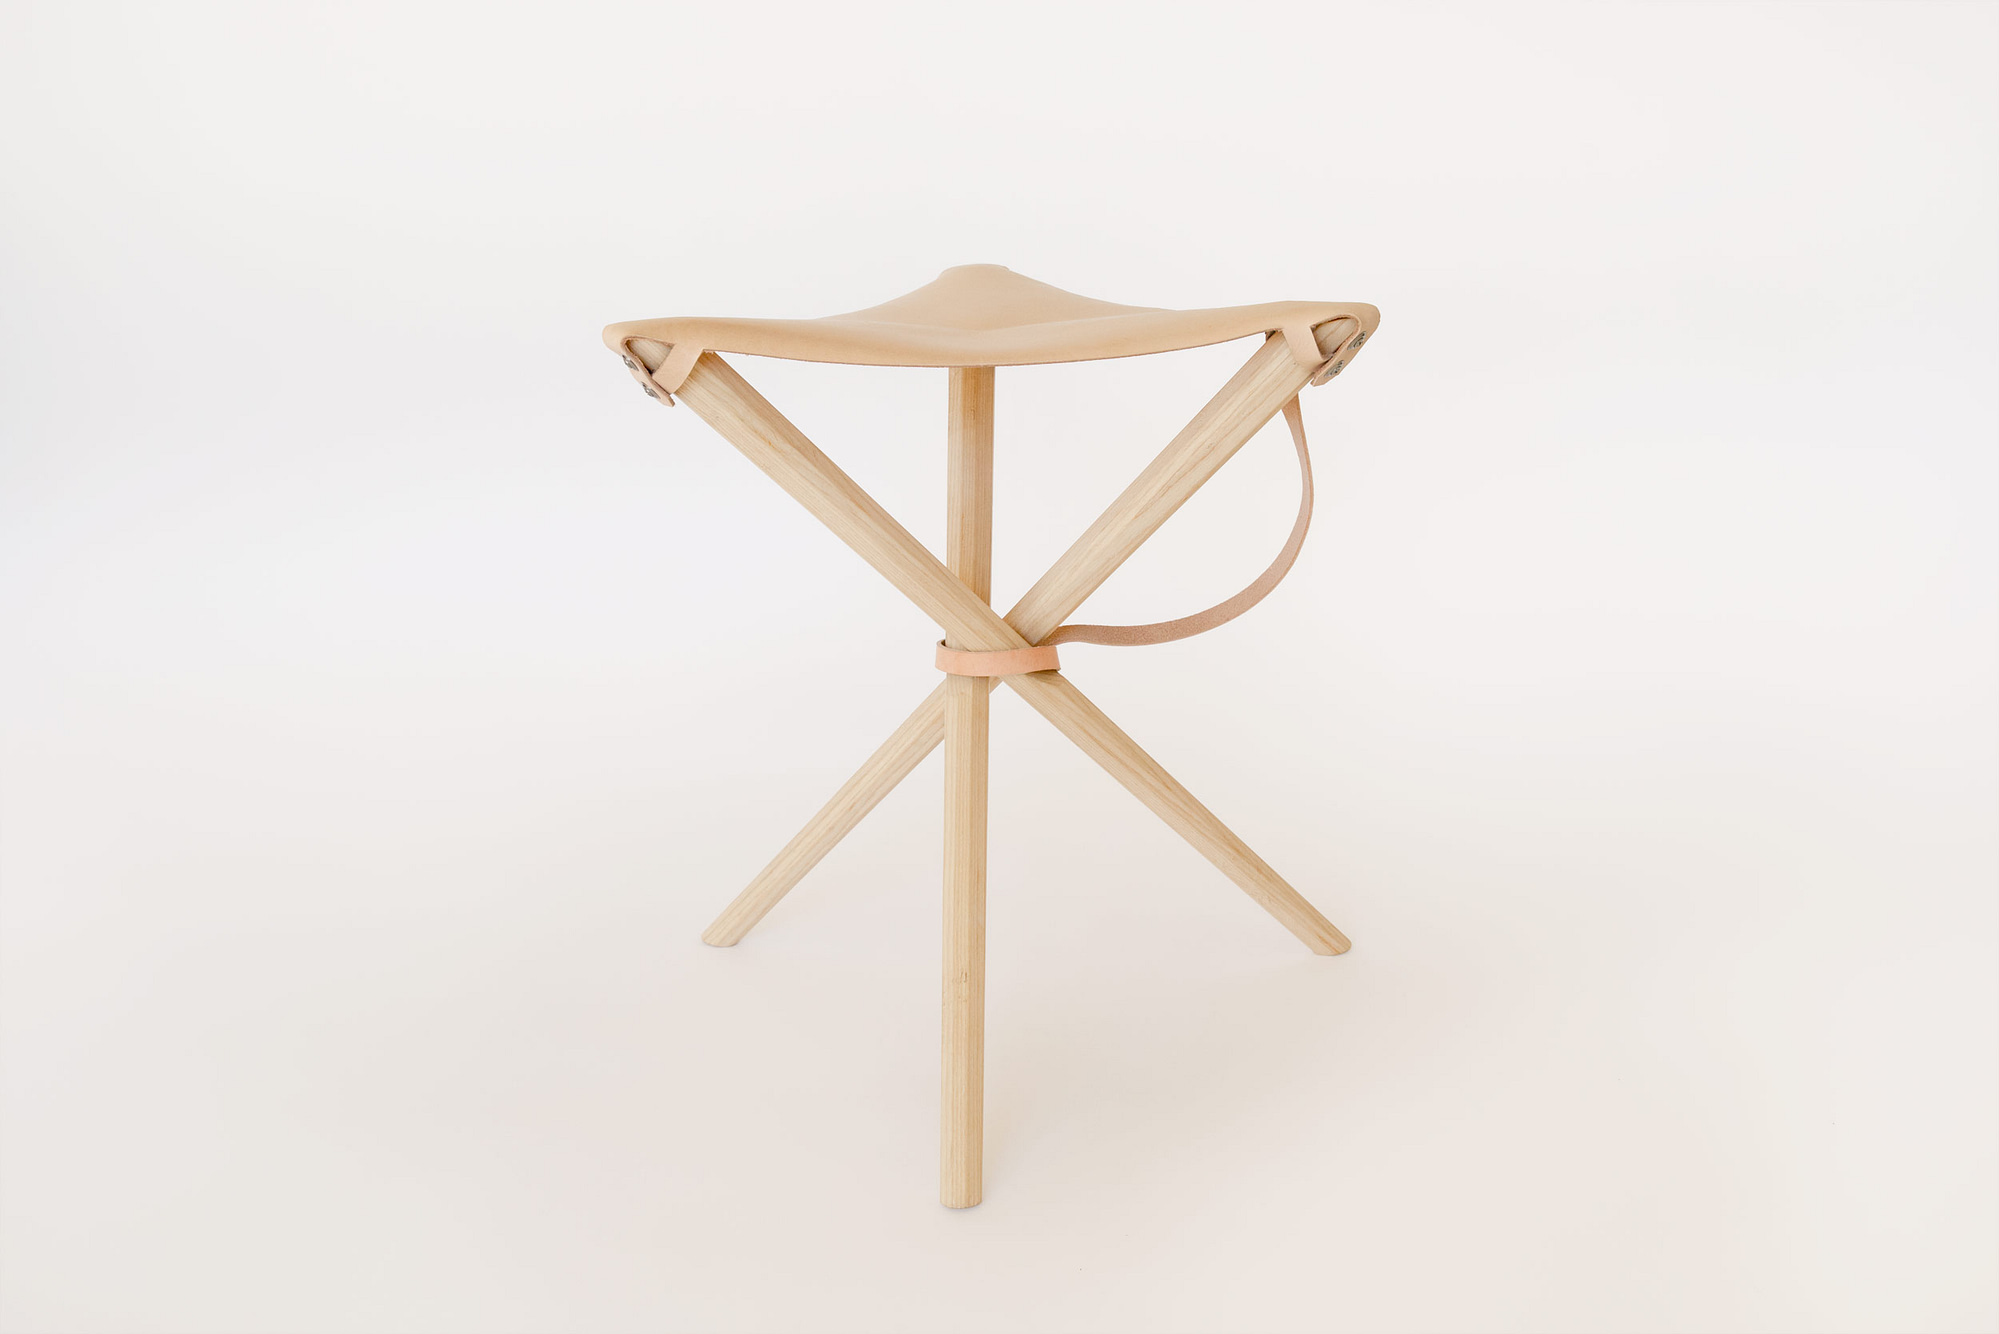 Coyote Stool in Veg Tan with Leash